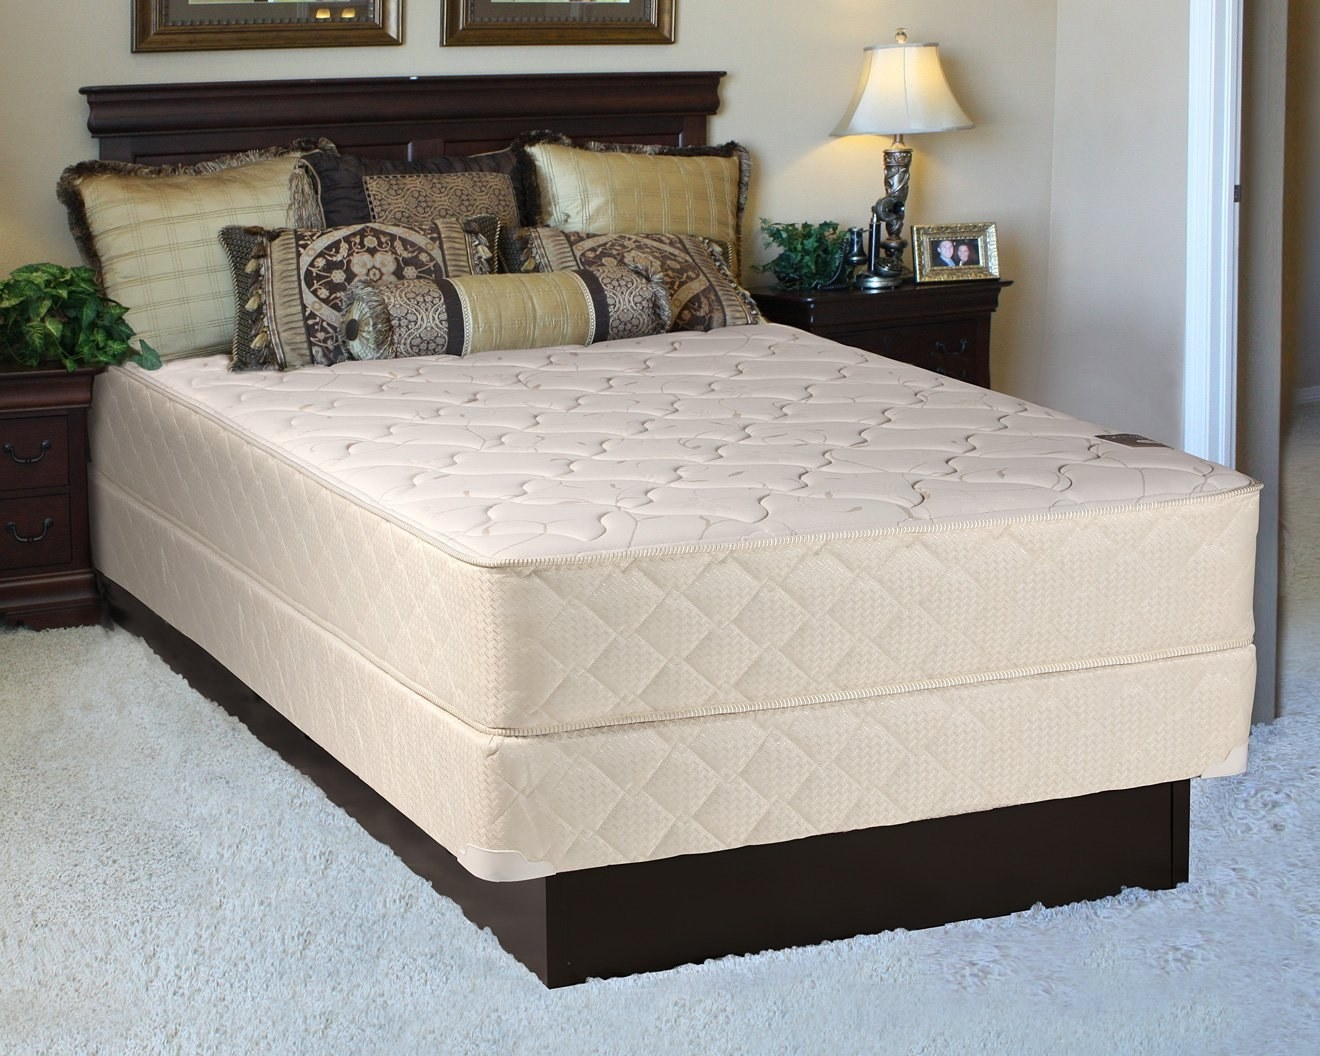 22 Mattresses You Can Get Online That Are As Comfy As They